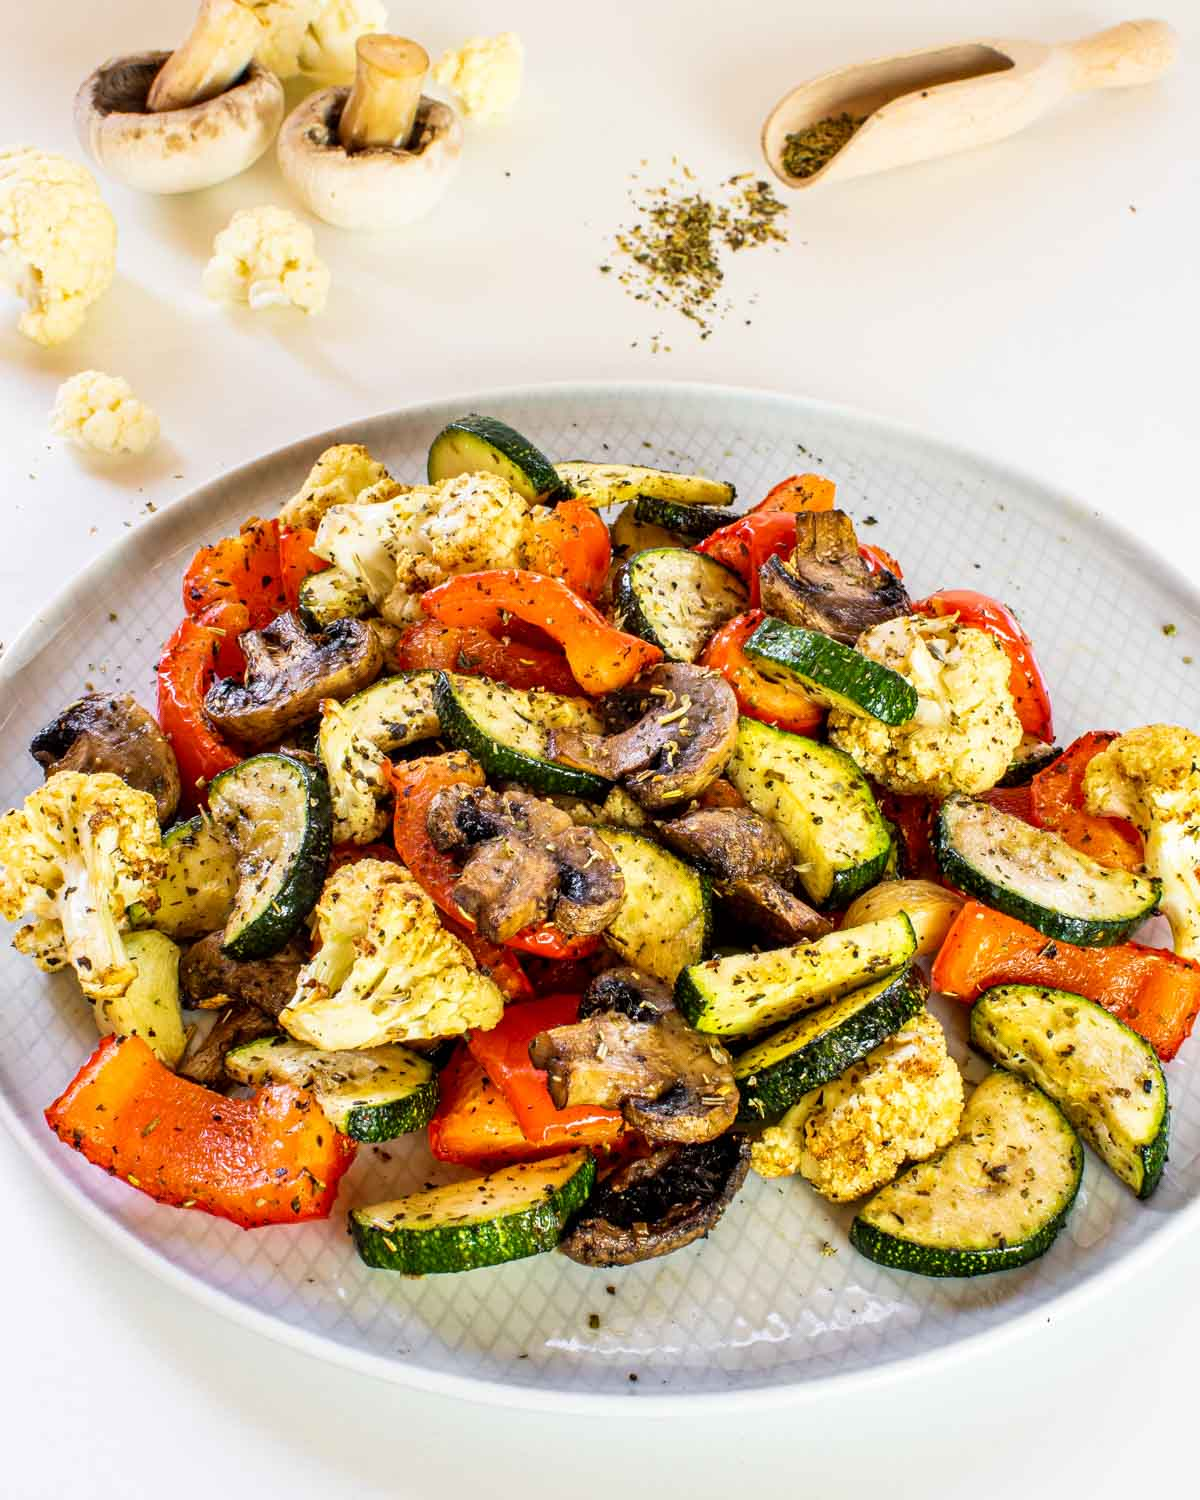 roasted vegetables made in the air fryer on a white plate.